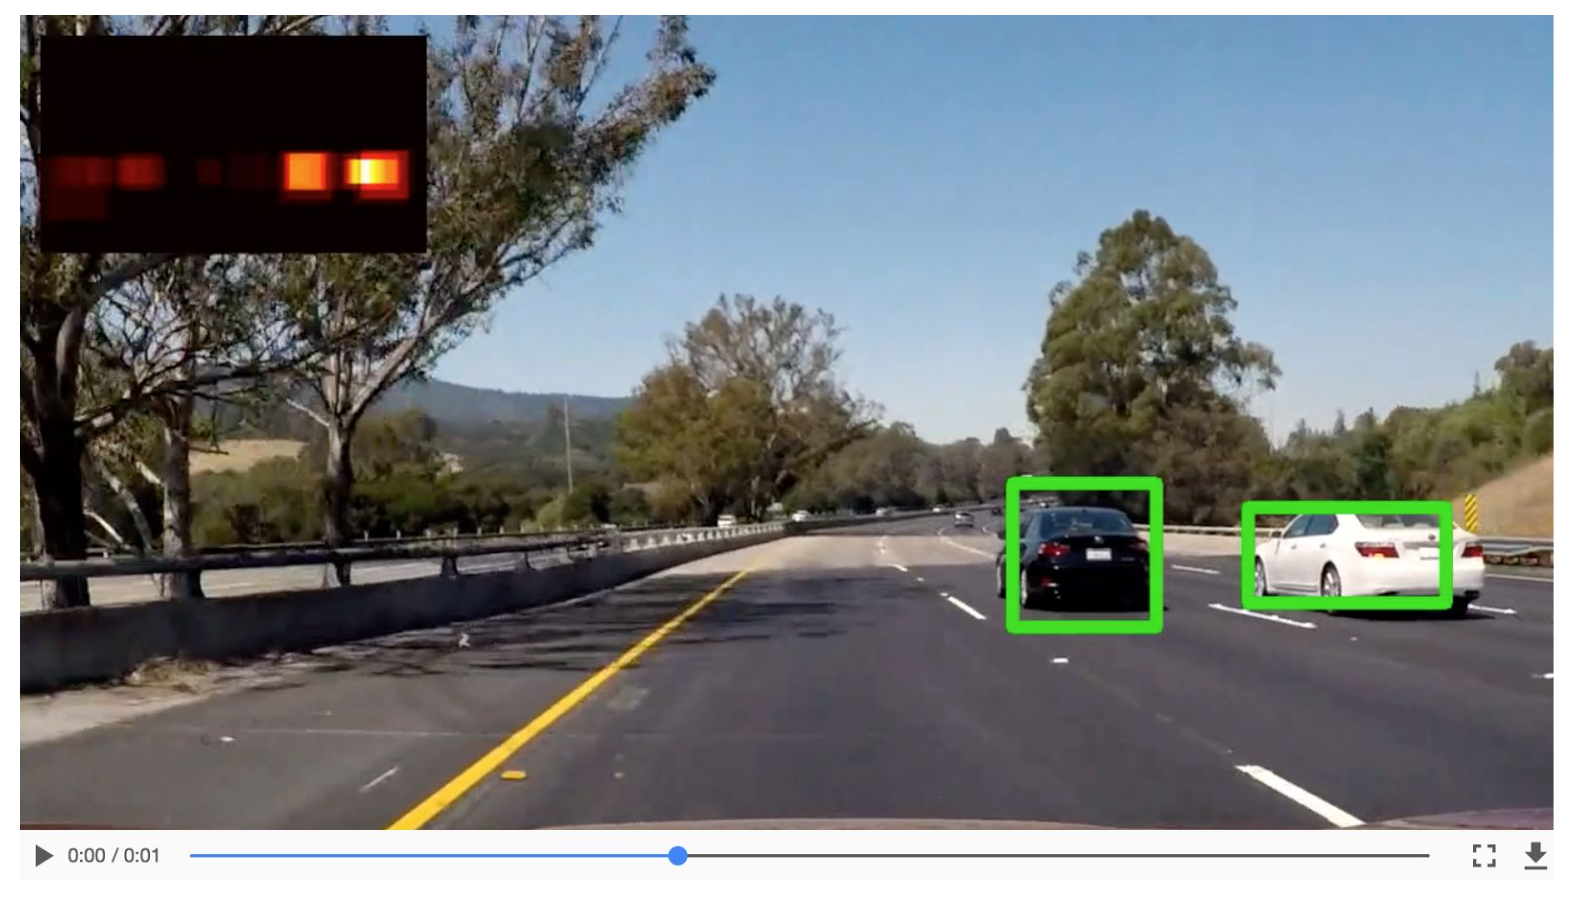 Vehicle Detection with HOG and Linear SVM - Mithi - Medium